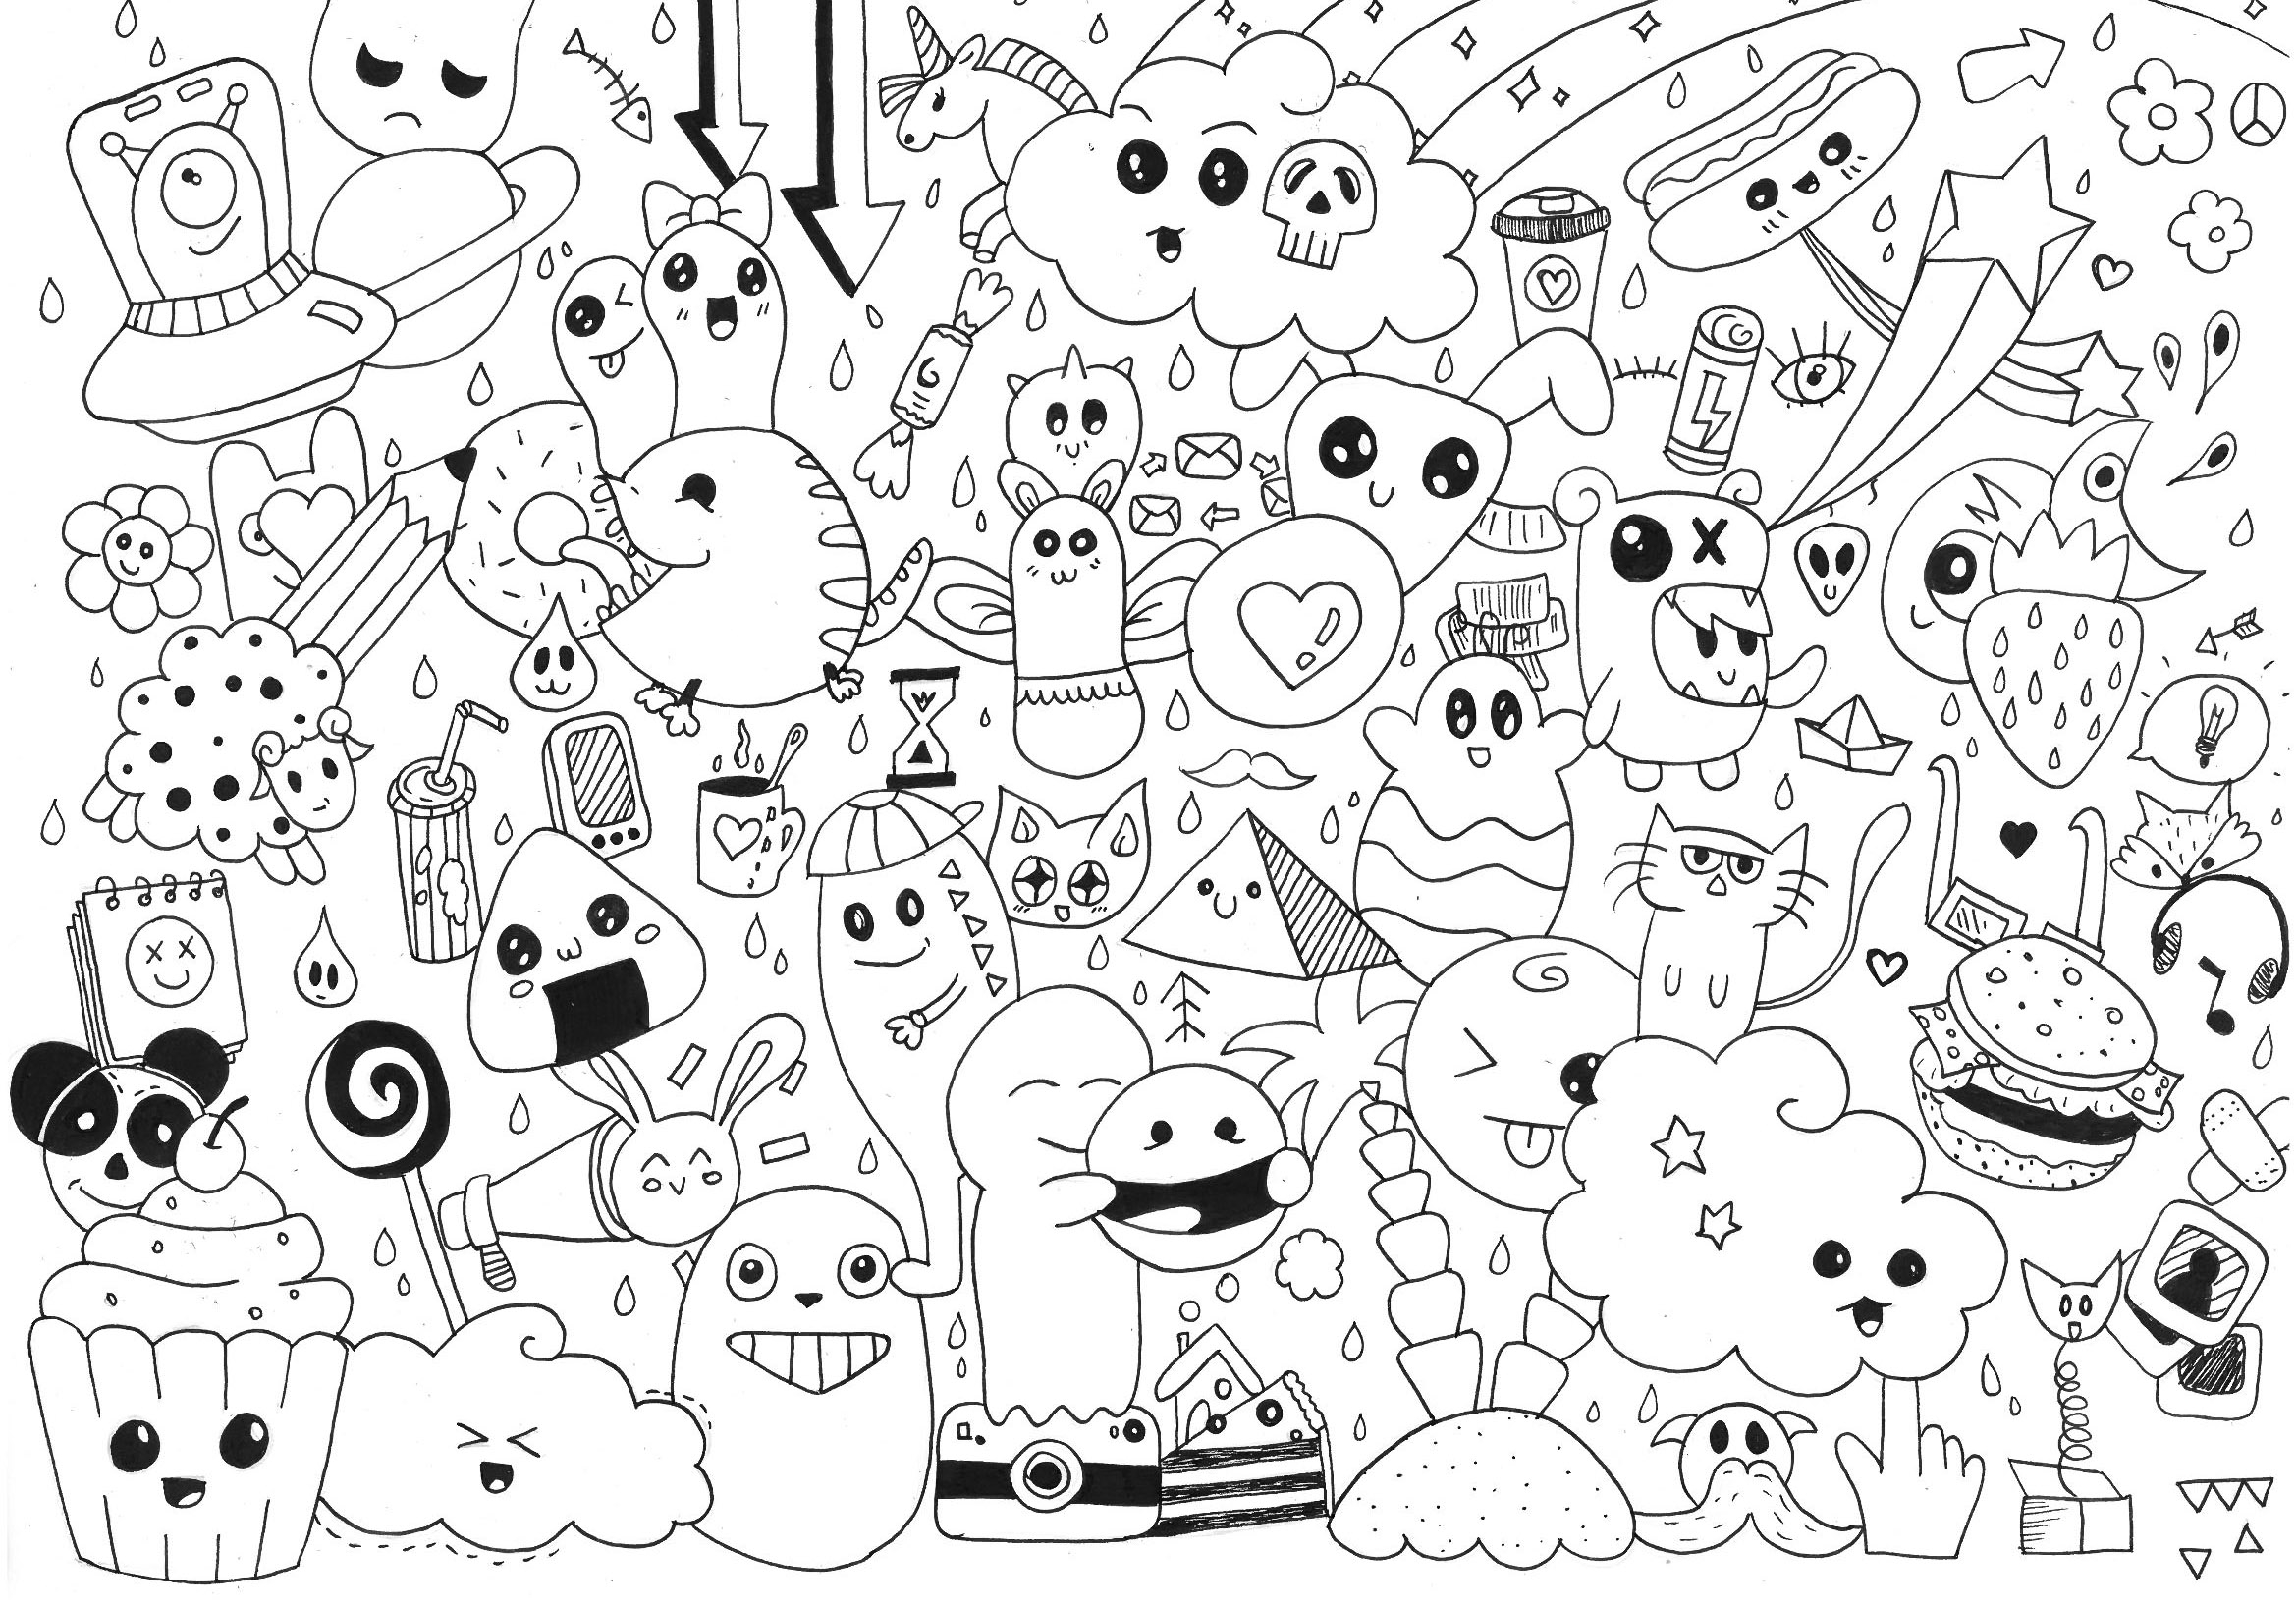 kids drawings for colouring 25 excellent picture of doodle coloring pages birijuscom kids for drawings colouring